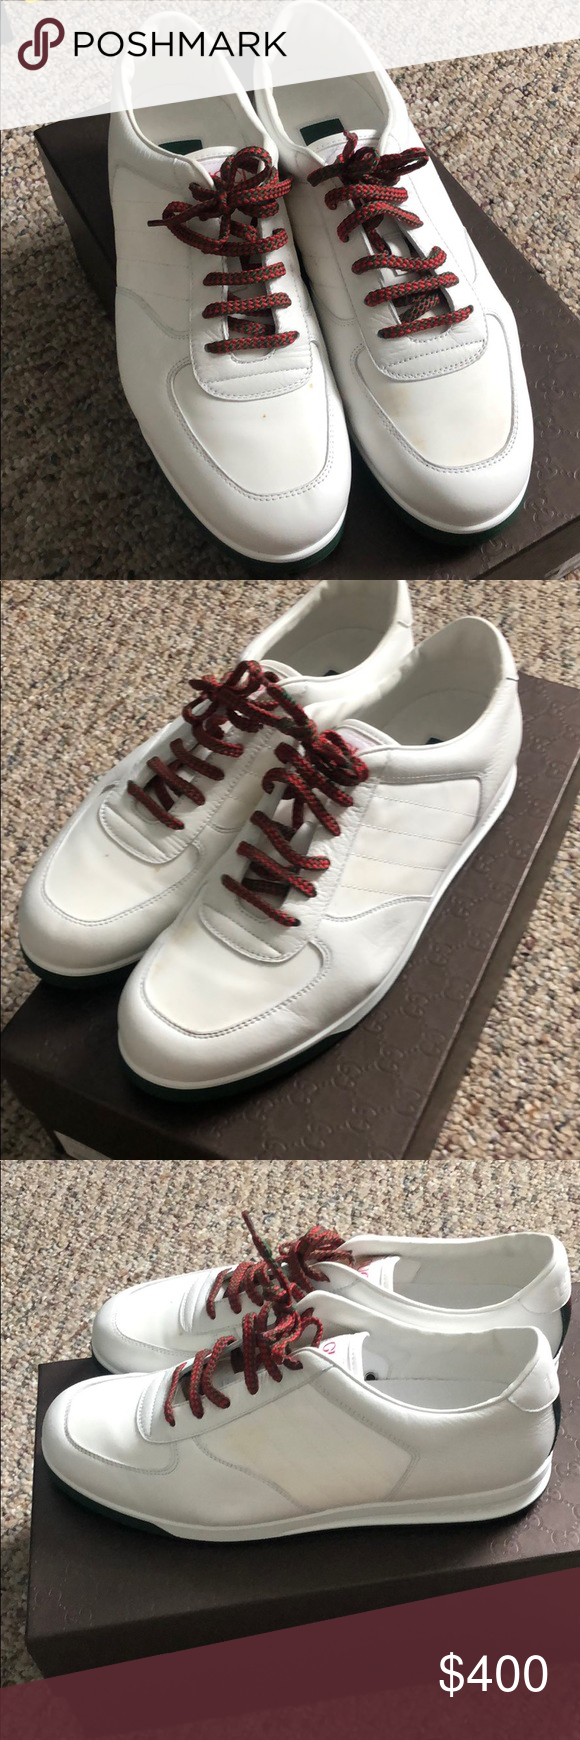 965bd6383dd Size 8.5. The white fabric part needs cleans. As shown in the photos. Comes  with box. Wore 1 time. Gucci Shoes Sneakers. Men Gucci low top SDOT ...